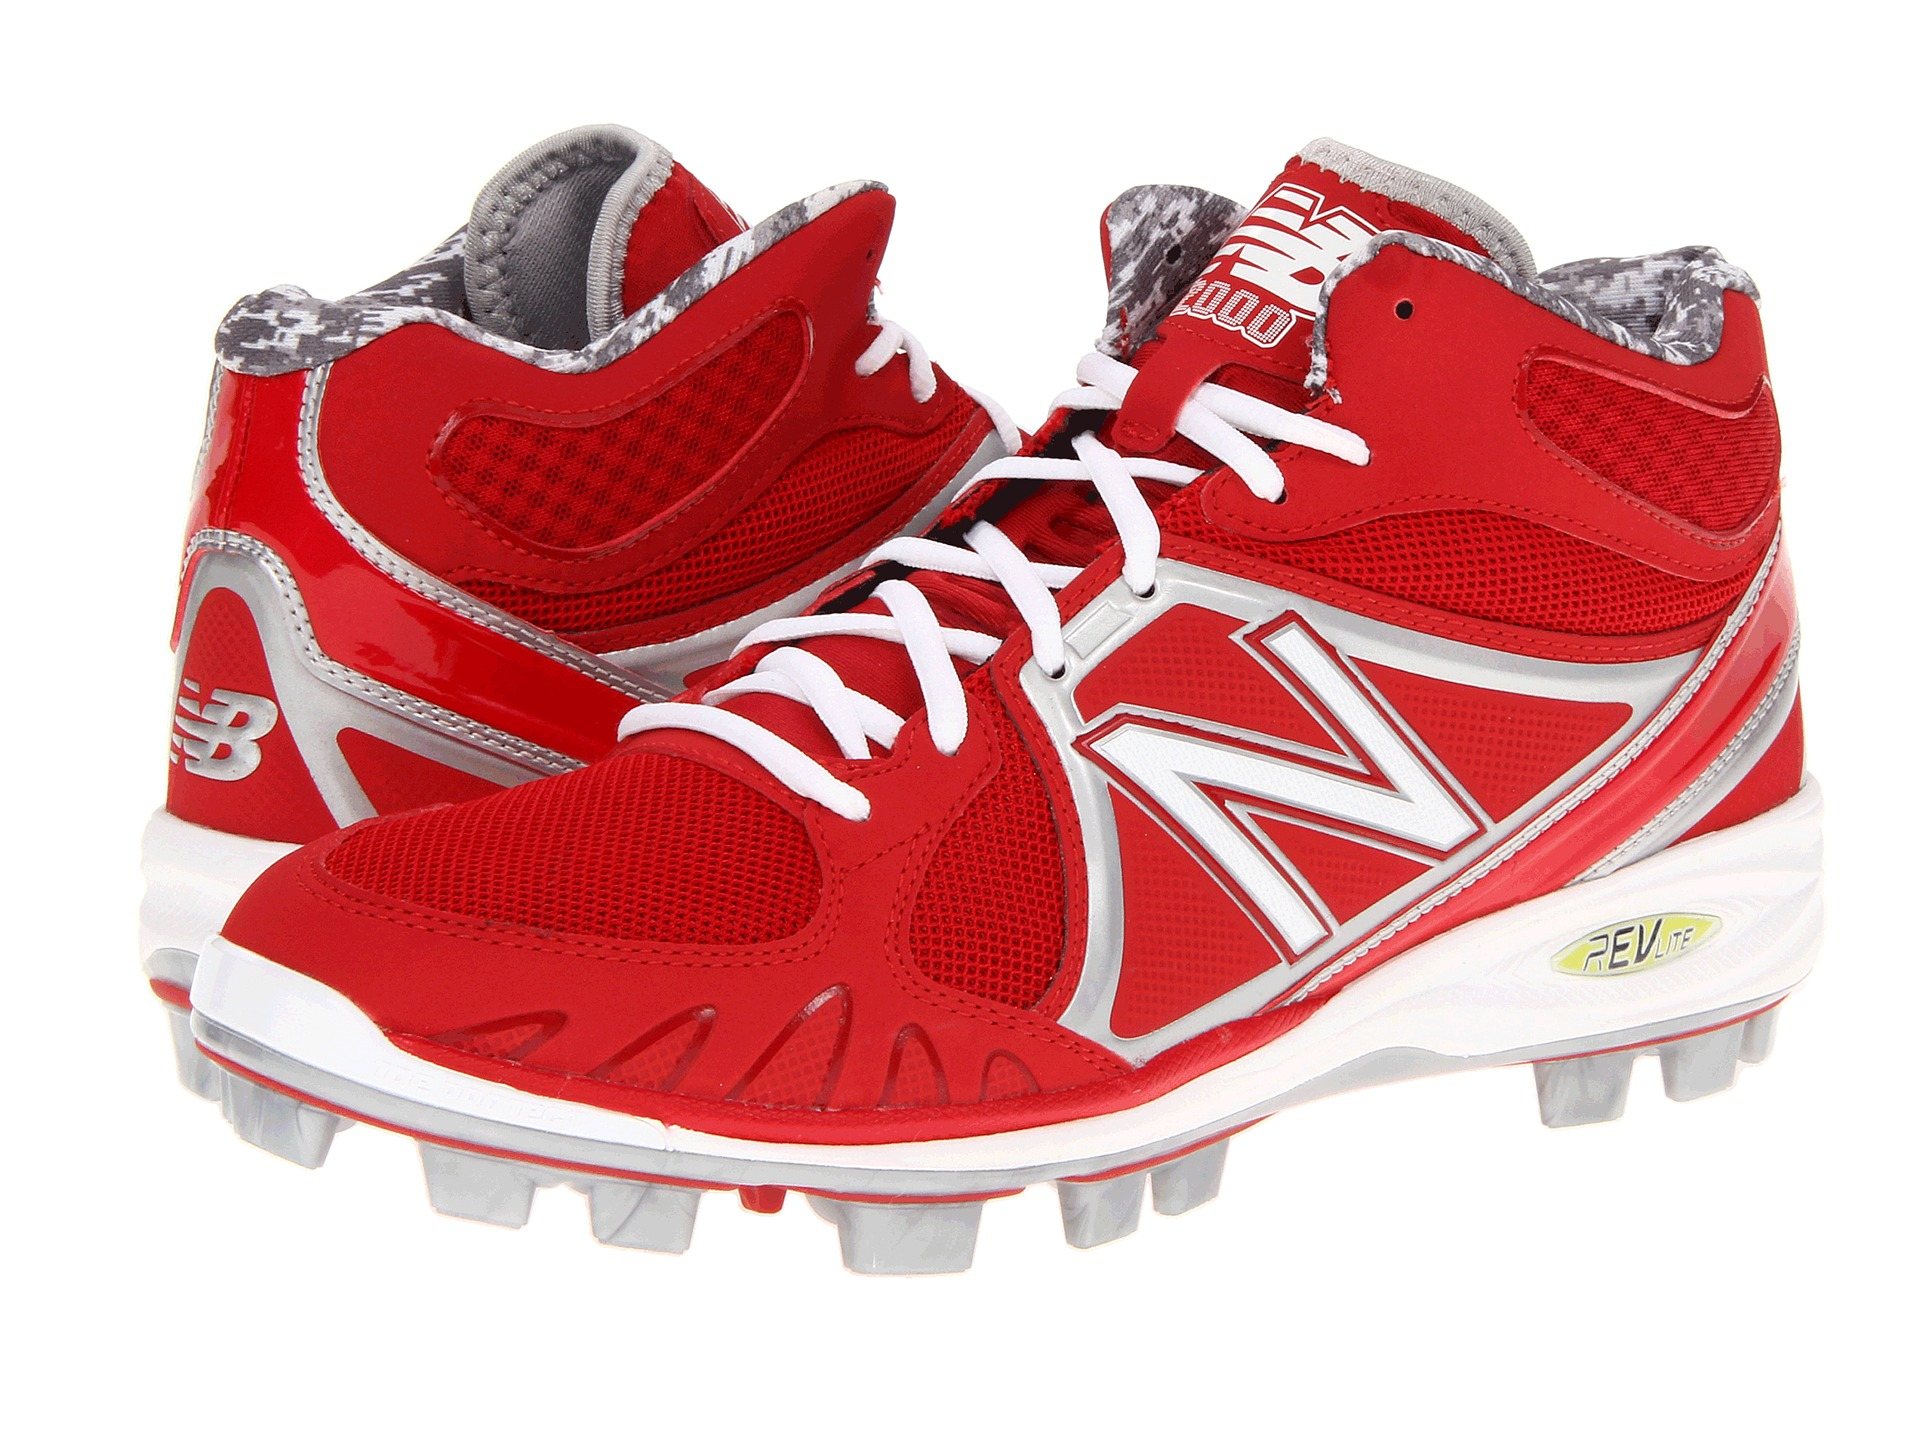 New Balance Golf Shoes White/Red. Inspired by our classic sneaker, this men's golf shoe combines New Balance comfort, durability and style with golf-specific technologies designed to enhance traction, stability, and ultimately, your game.